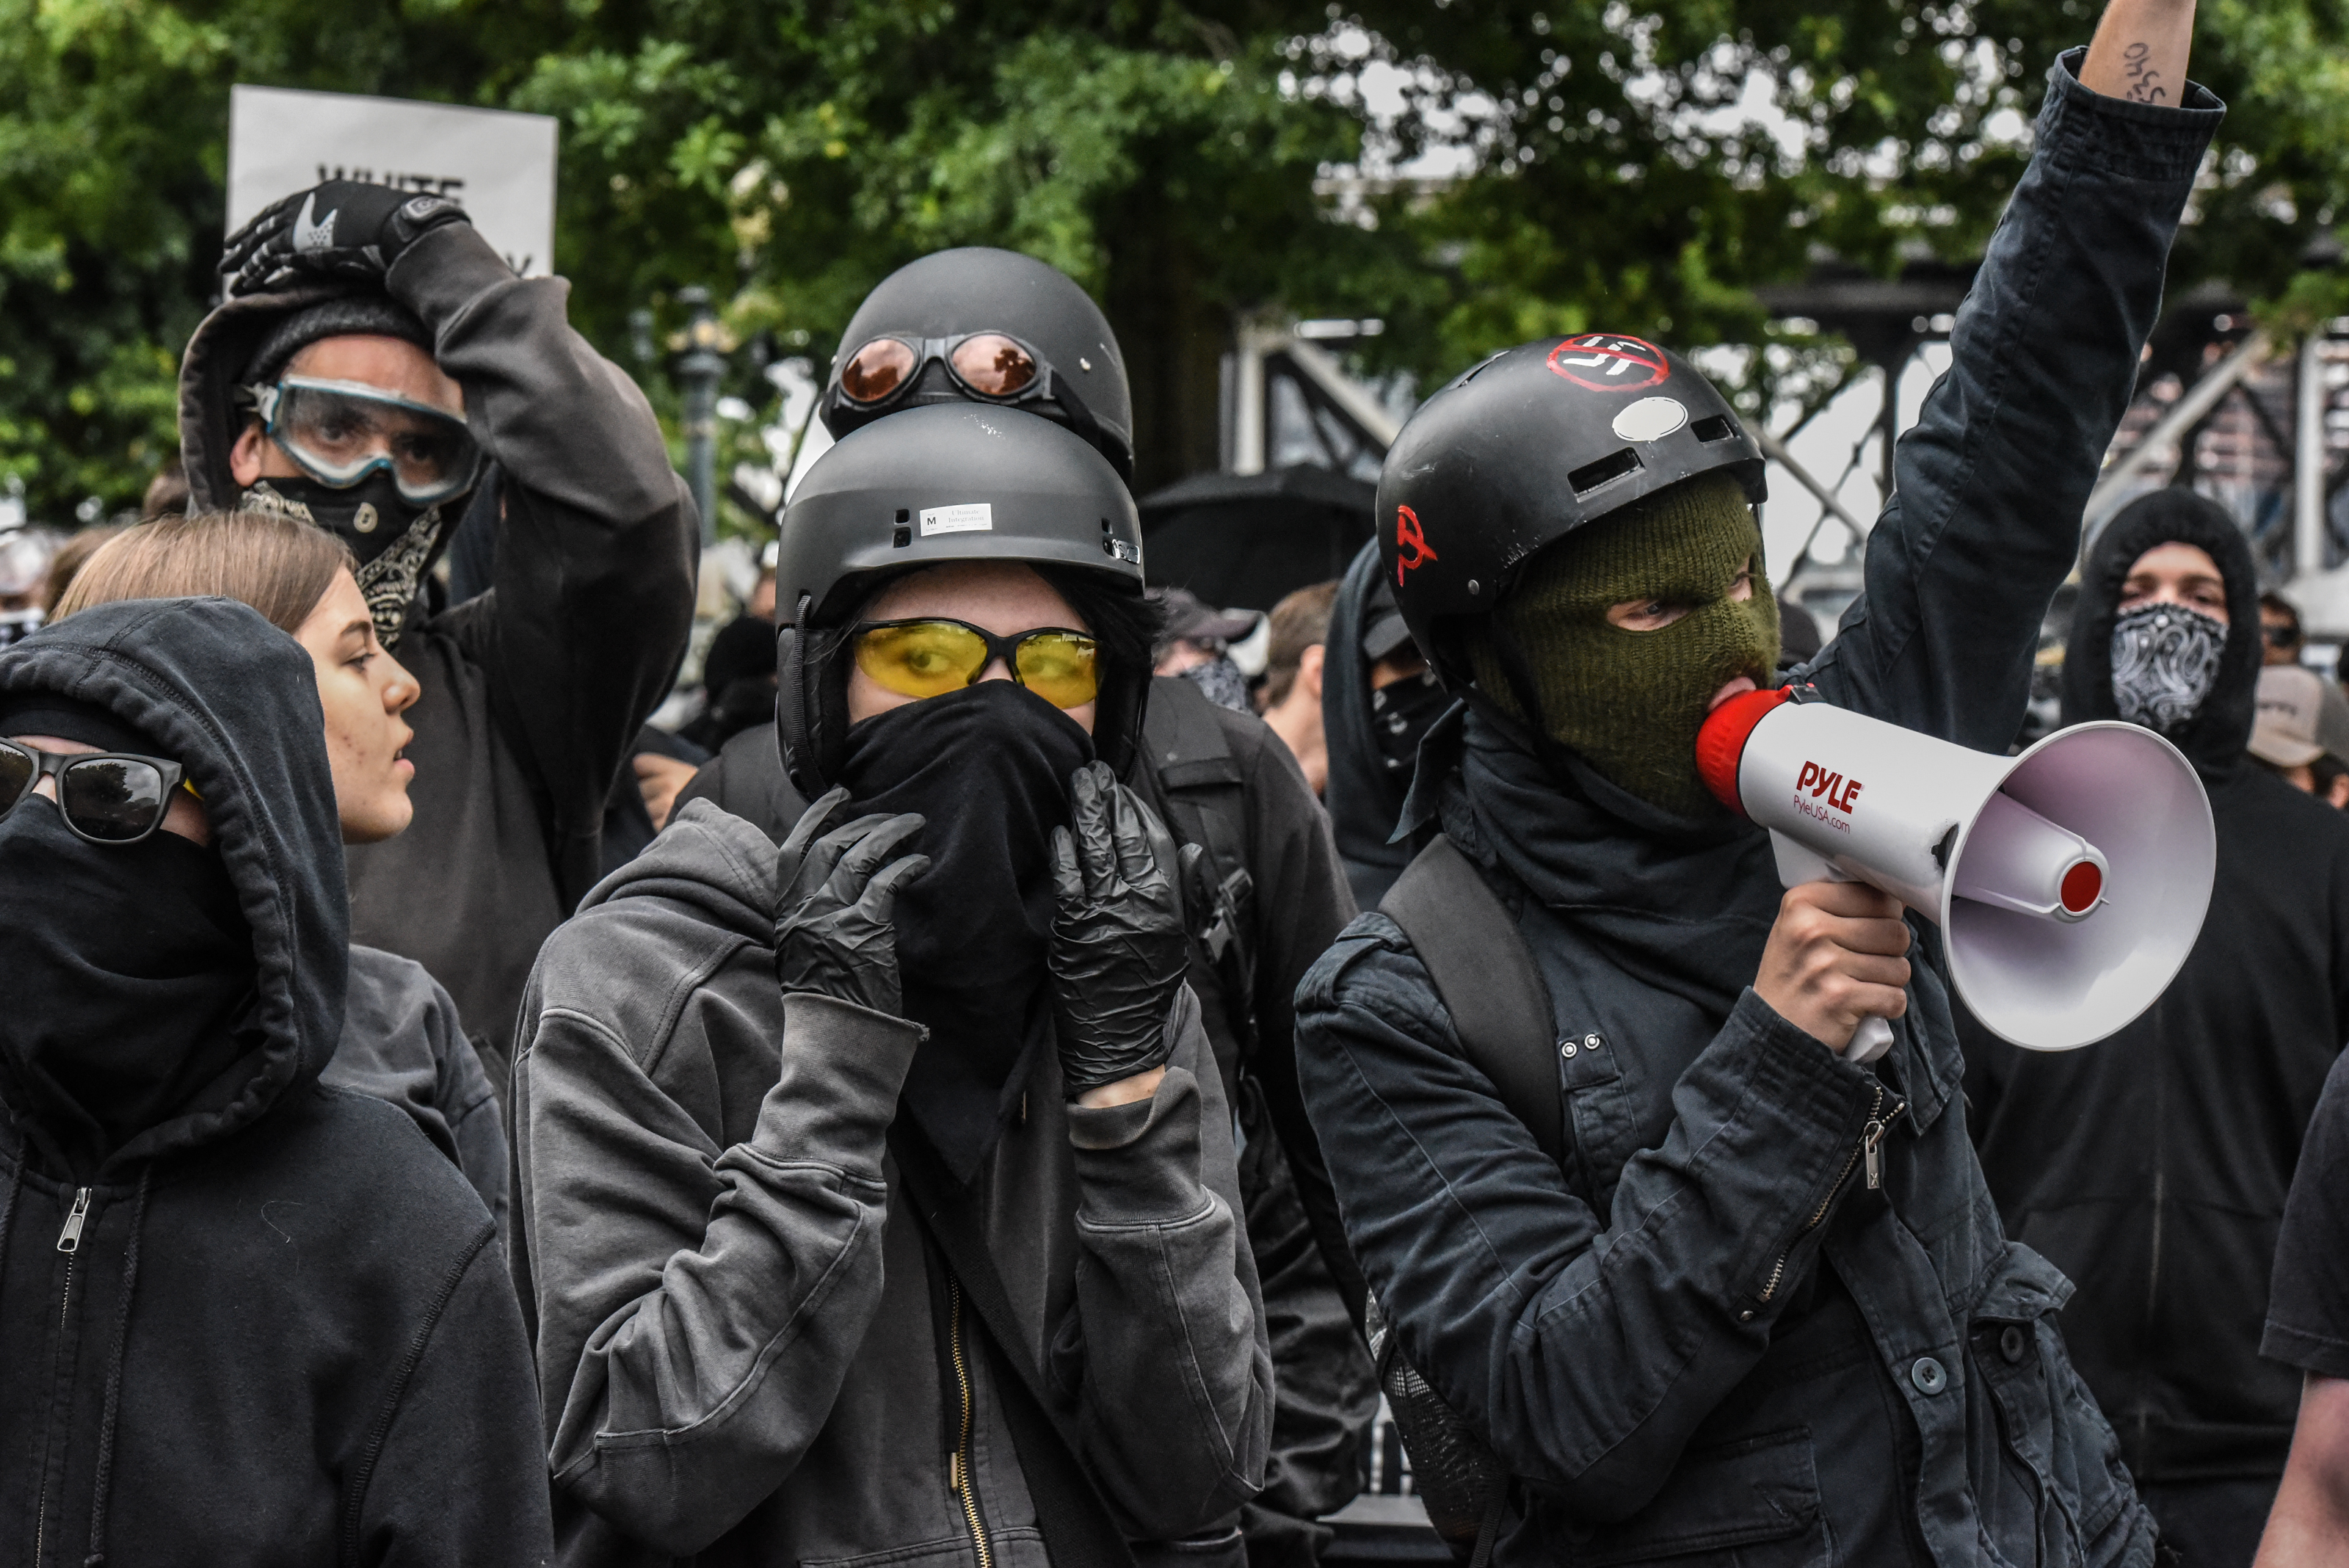 Counter-protesters wear black clothes during an Antifa gathering during an alt-right rally on August 17, 2019 in Portland, Oregon. (Stephanie Keith/Getty Images)